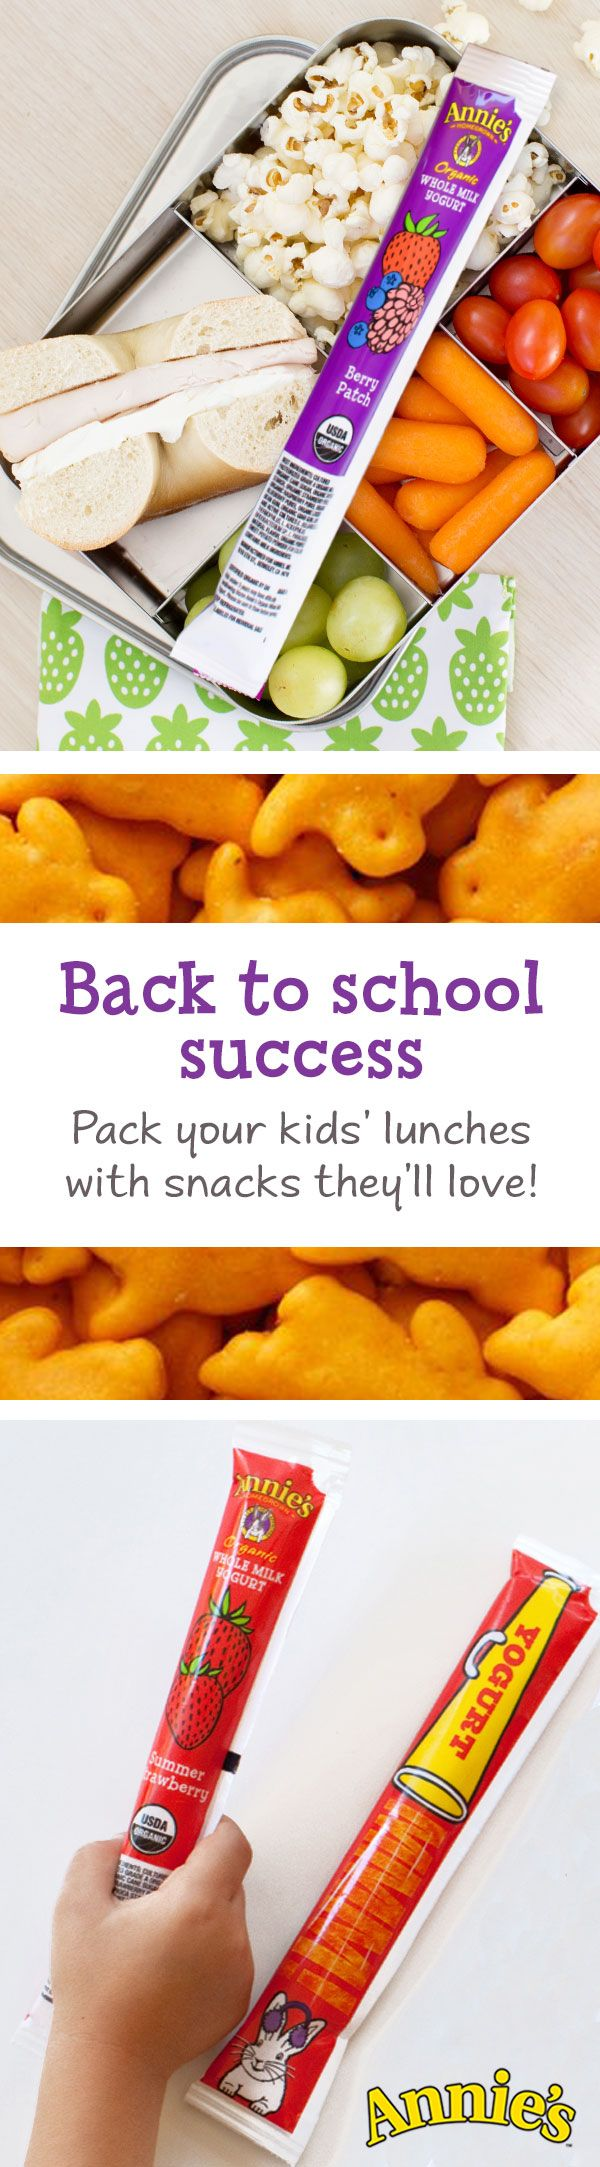 Lunch packing is now easy-peasy with Annie's delicious and wholesome back-to-school lunch options! You'll find everything you could ever need - like our Organic Whole Milk Yogurt Tubes, to give your little one an A+ lunch without  synthetic flavors or colors.